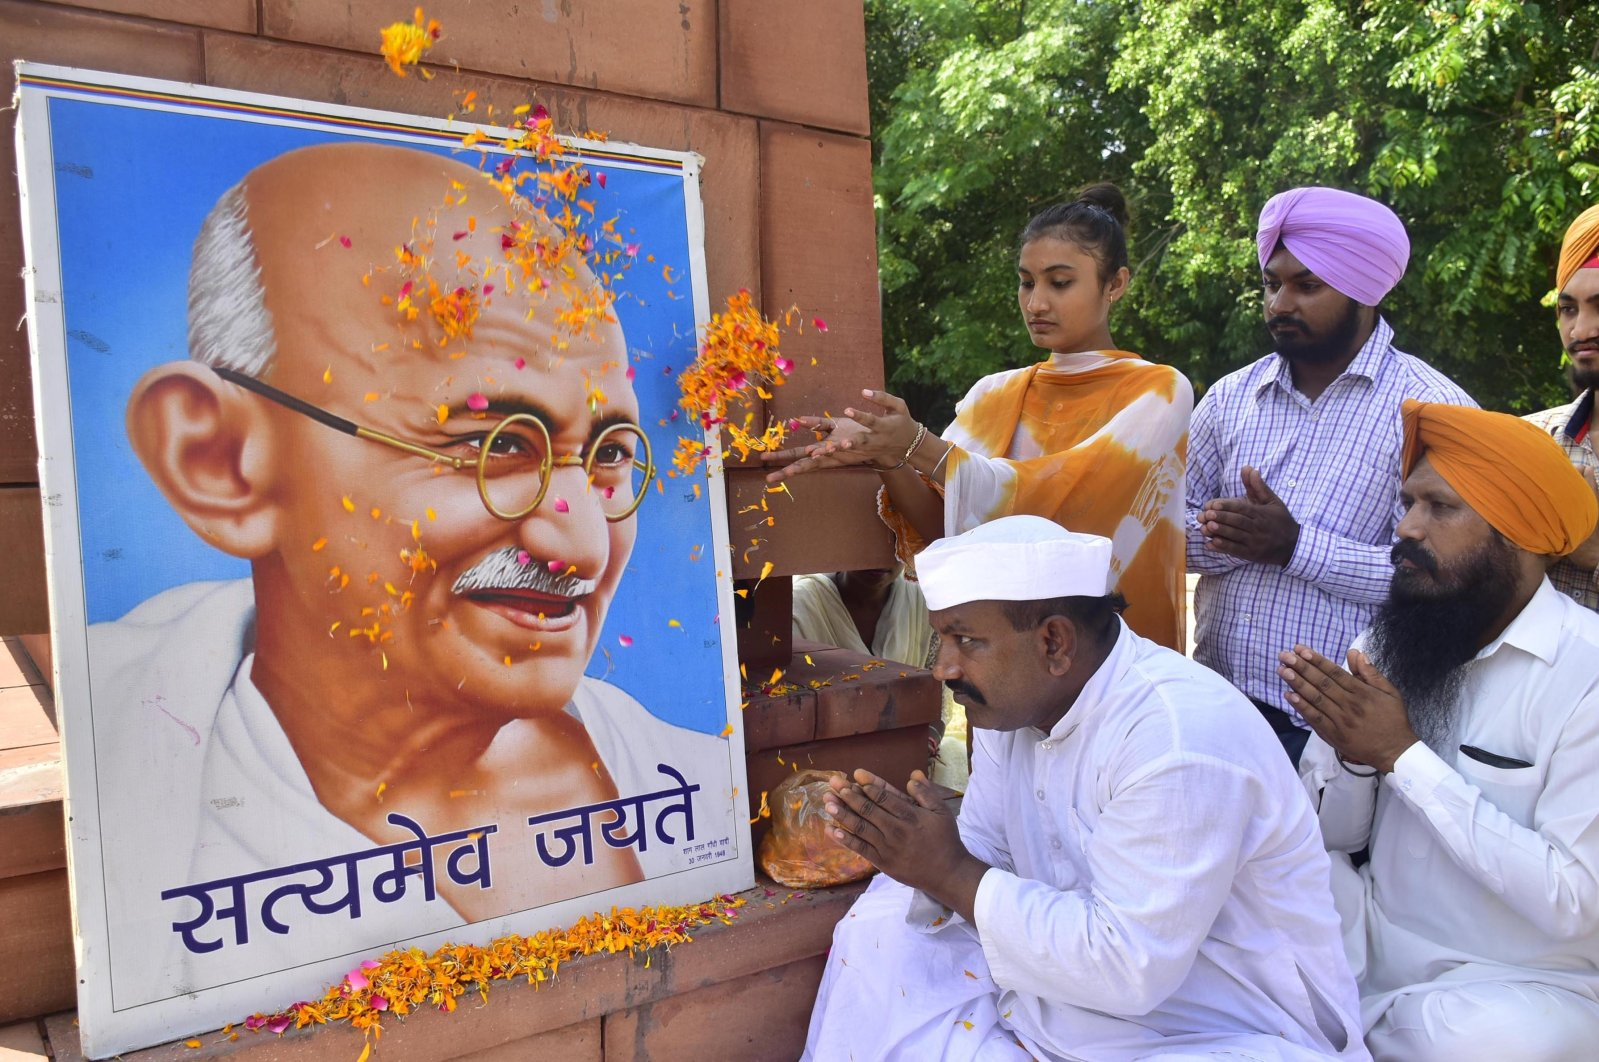 Social worker Shyam Lal Gandhi (L) and others pay floral tribute to Mahatma Gandhi on the occasion of the anniversary of his birth, Amritsar, India, Oct. 2, 2021.  (Photo by Sameer Sehgal/Hindustan Times via Getty Images)